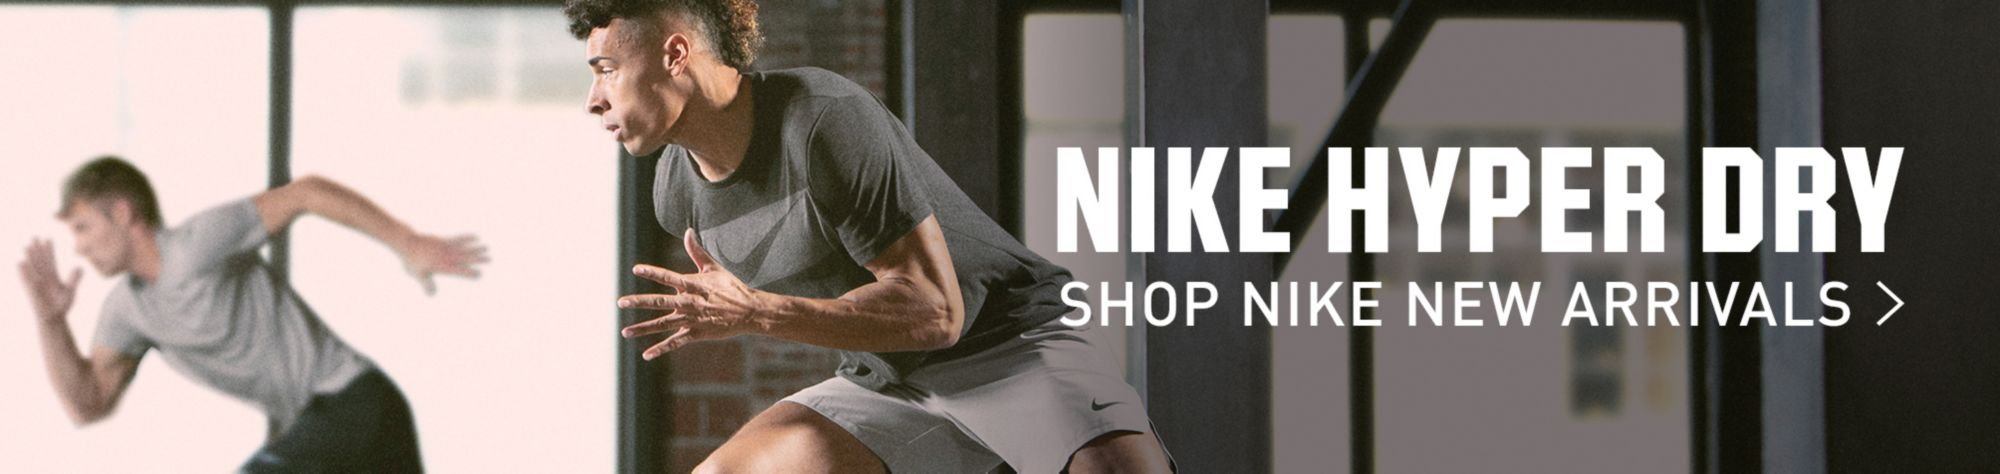 Nike Hyper Dry Shop Nike New Arrivals